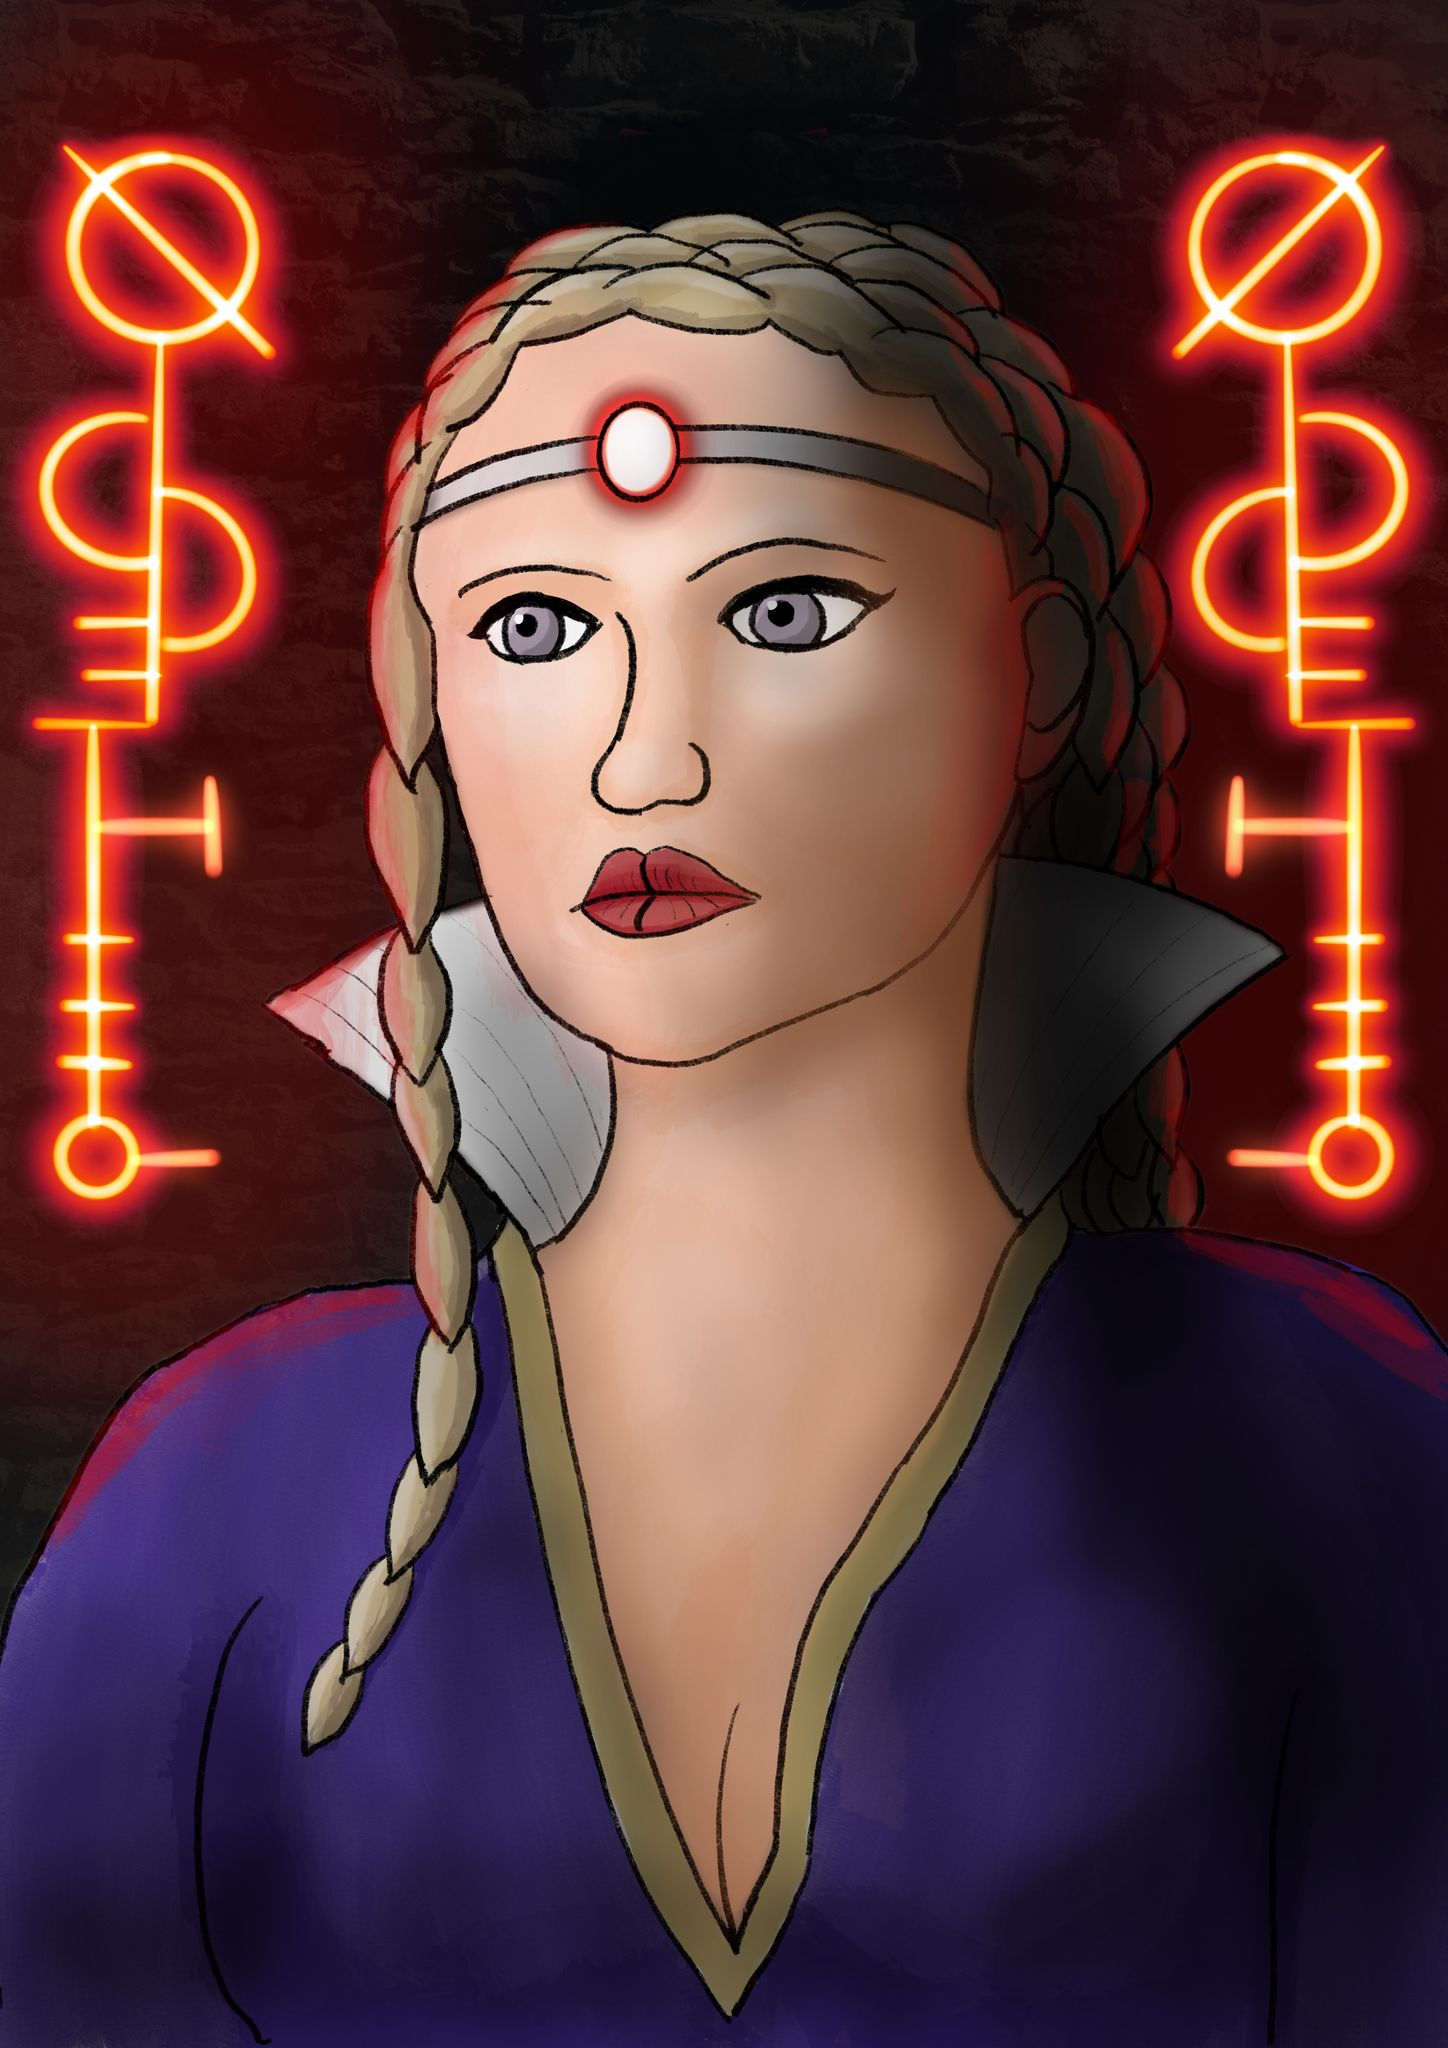 A painting of a white woman from the chest up, lit from the left side while her right side is heavily shadowed. She has long braided blonde hair and is wearing a purple high-collared dress. Behind her and to her left and right are glowing red elritch runes, giving a faint red tinge to her outline.